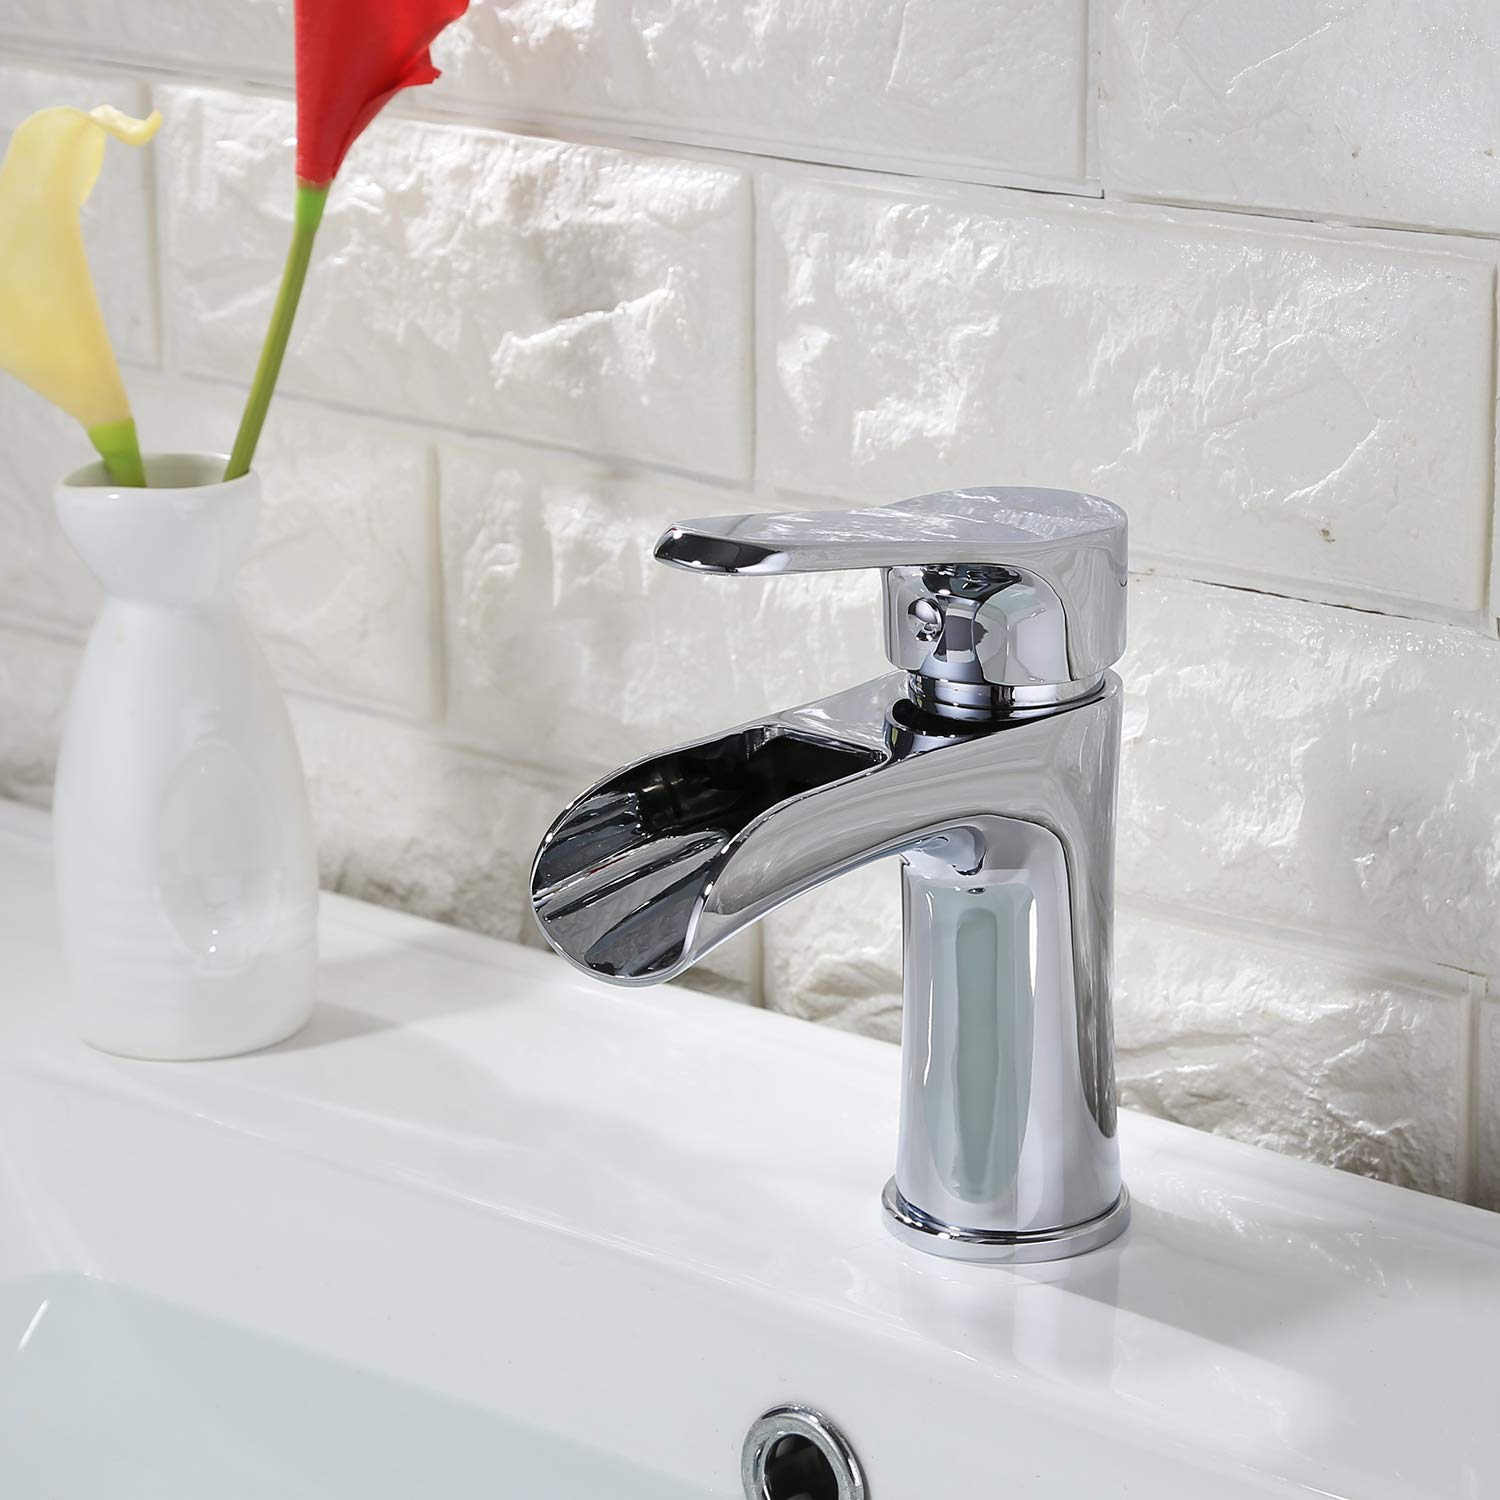 Bathroom Basin Sink Faucet Waterfall Widespread Single Handle Deck Mount  Brass Lavatory Vessel Mixer Taps     Amazon.com